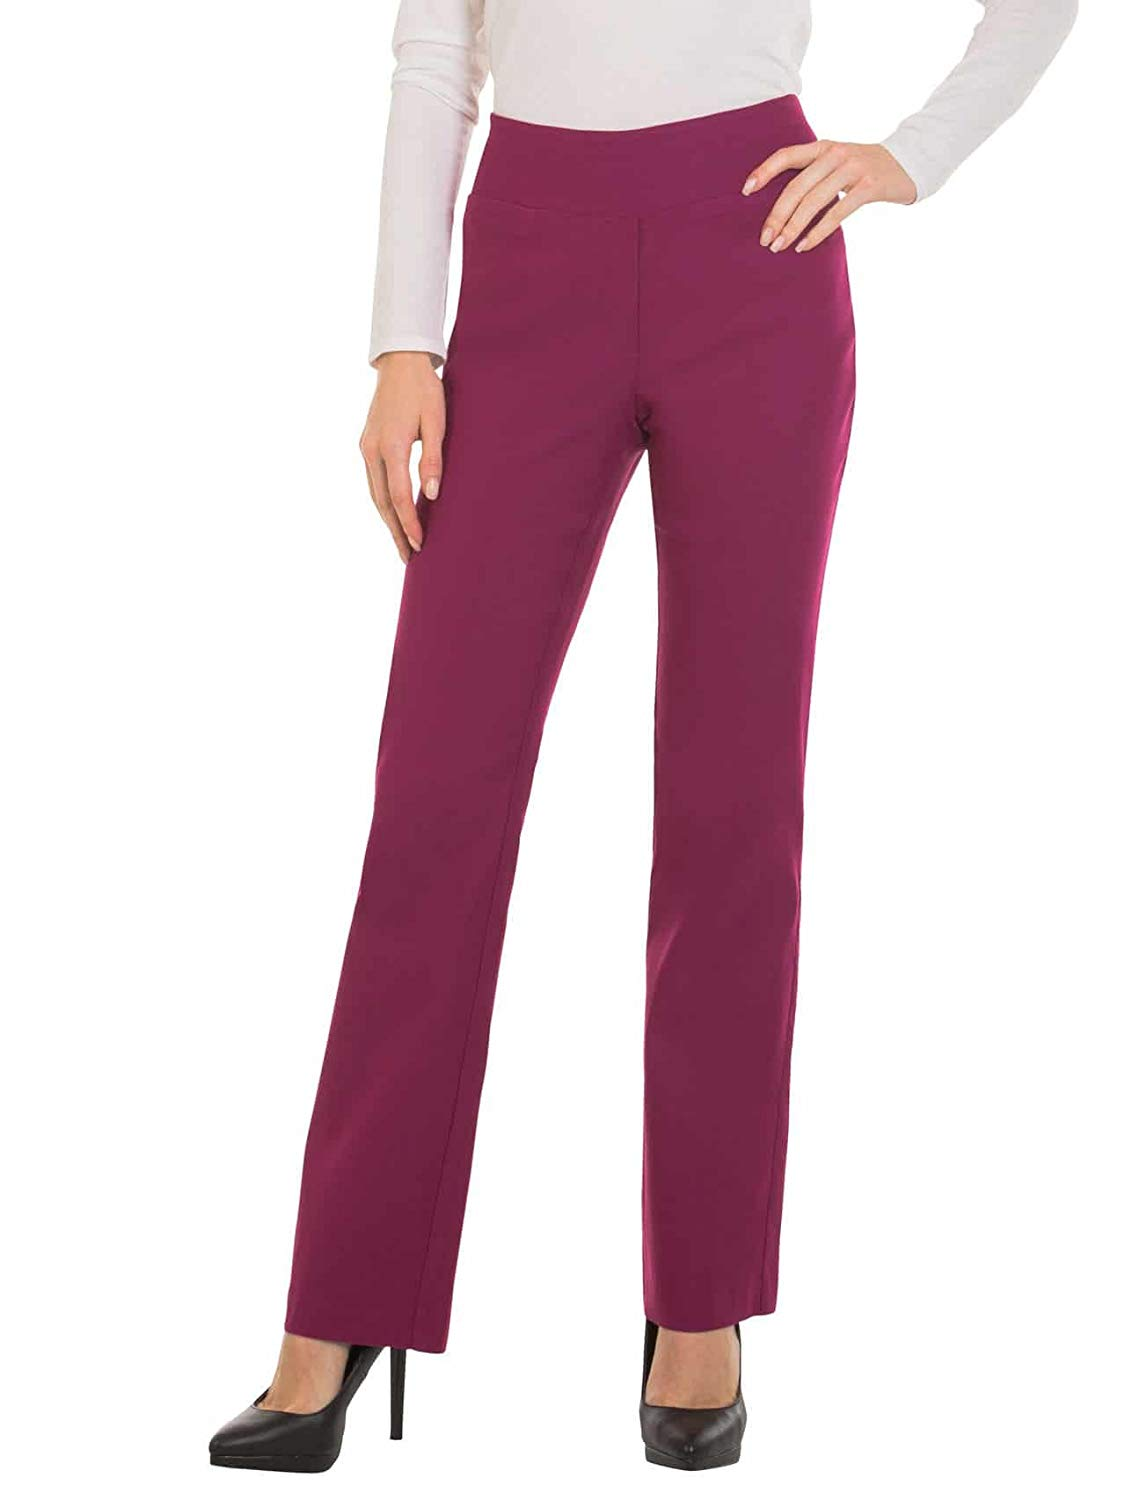 20 Pieces Bootcut Dress Pants For Women -Stretch Comfy Work Pull On Womens Pant2019